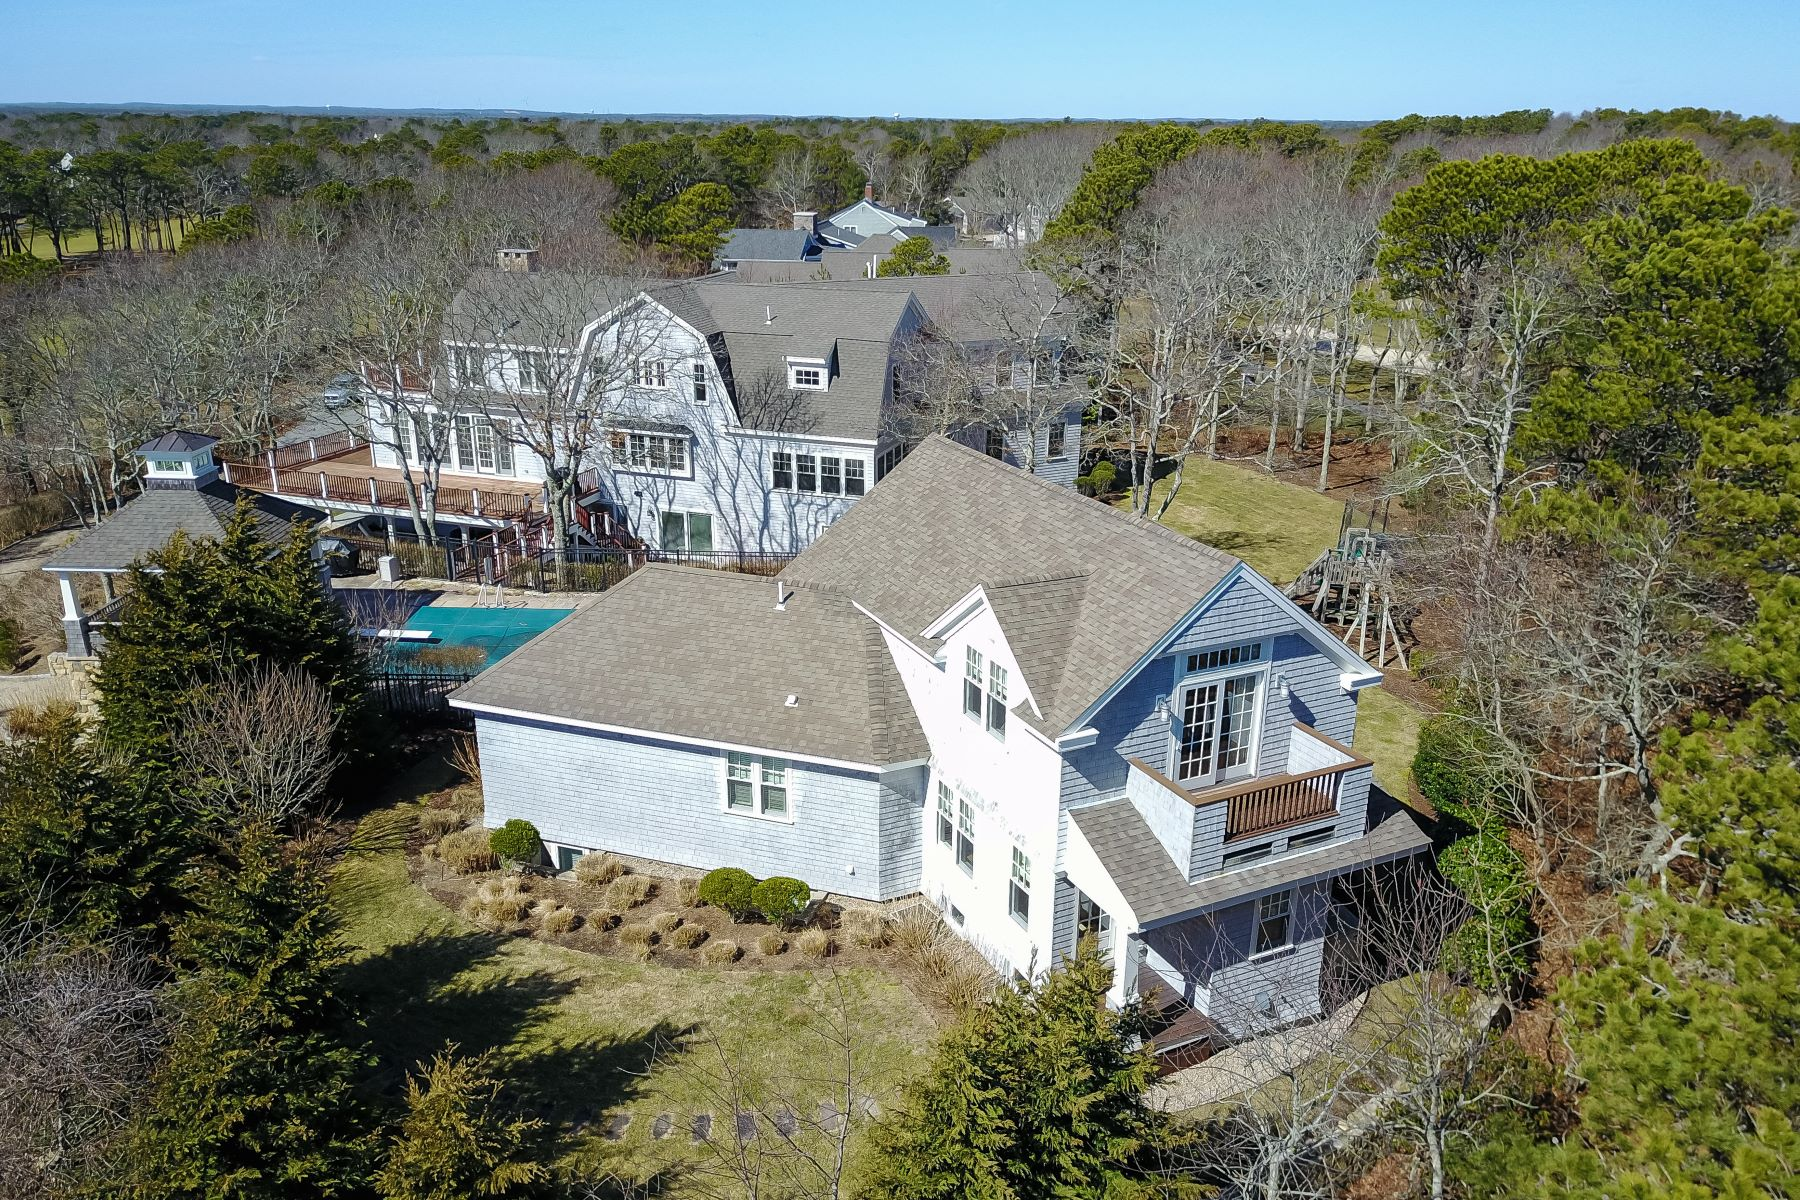 Single Family Homes for Active at GOLF FRONT LIVING AT IT'S BEST 242 Glenneagle Drive New Seabury, Massachusetts 02649 United States